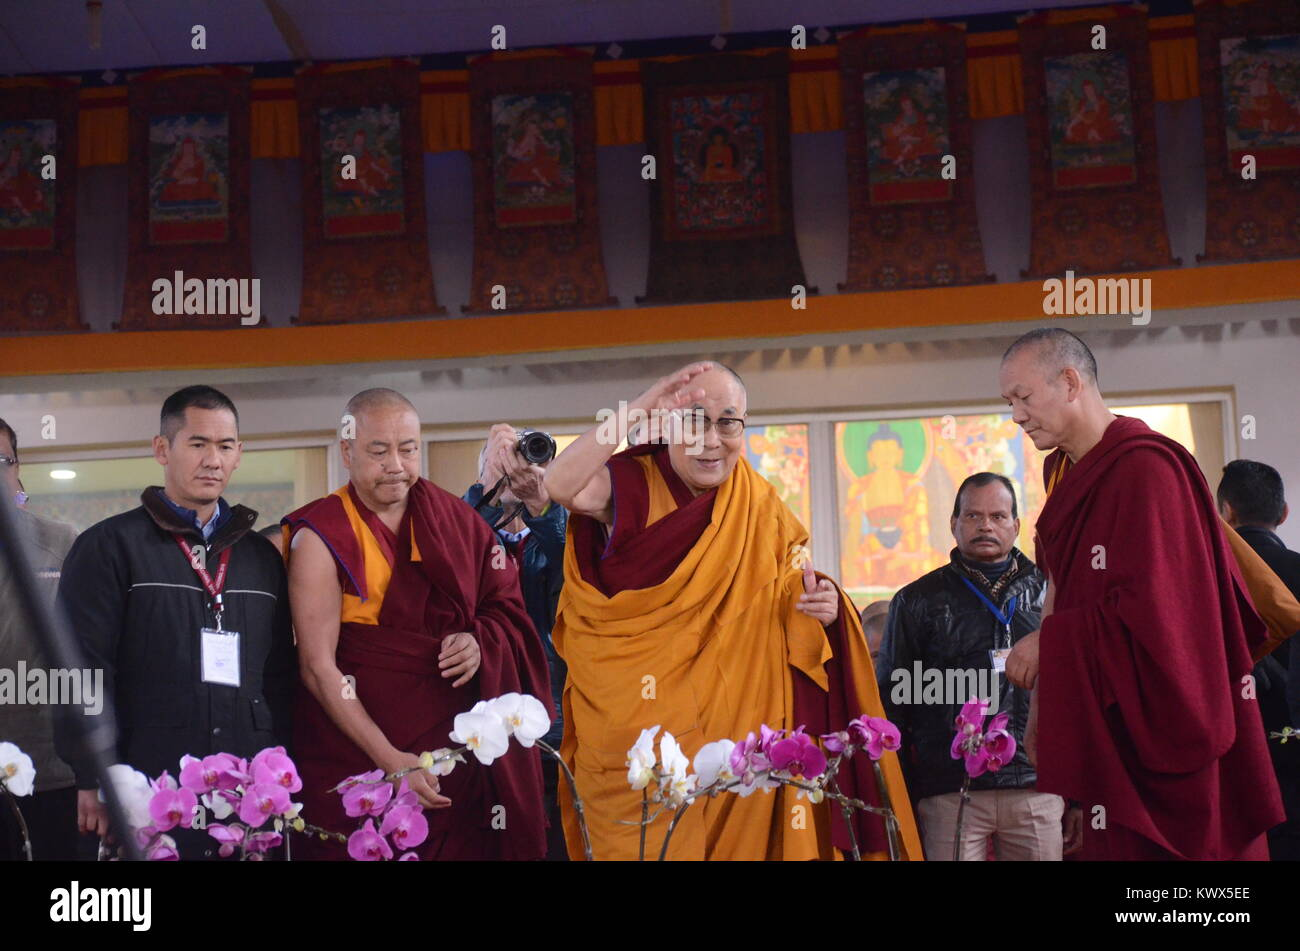 Bodh gaya, India 05 January 2018 - The Holiness 14th Dalai Lama is addressing a   gathering during the special teaching Stock Photo